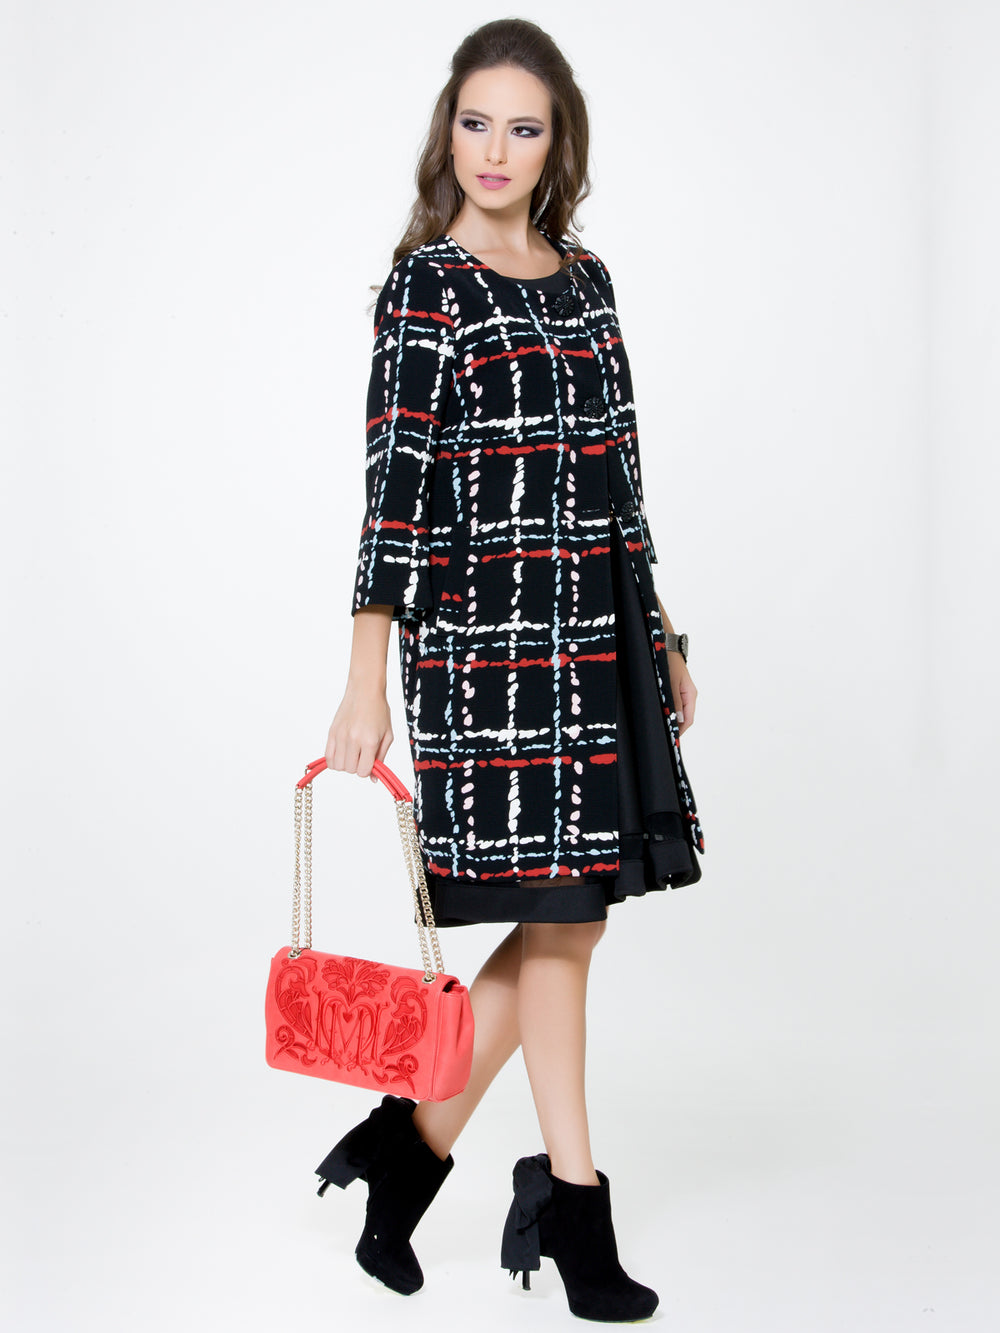 Square Prints Coat, CJF - elilhaam.com